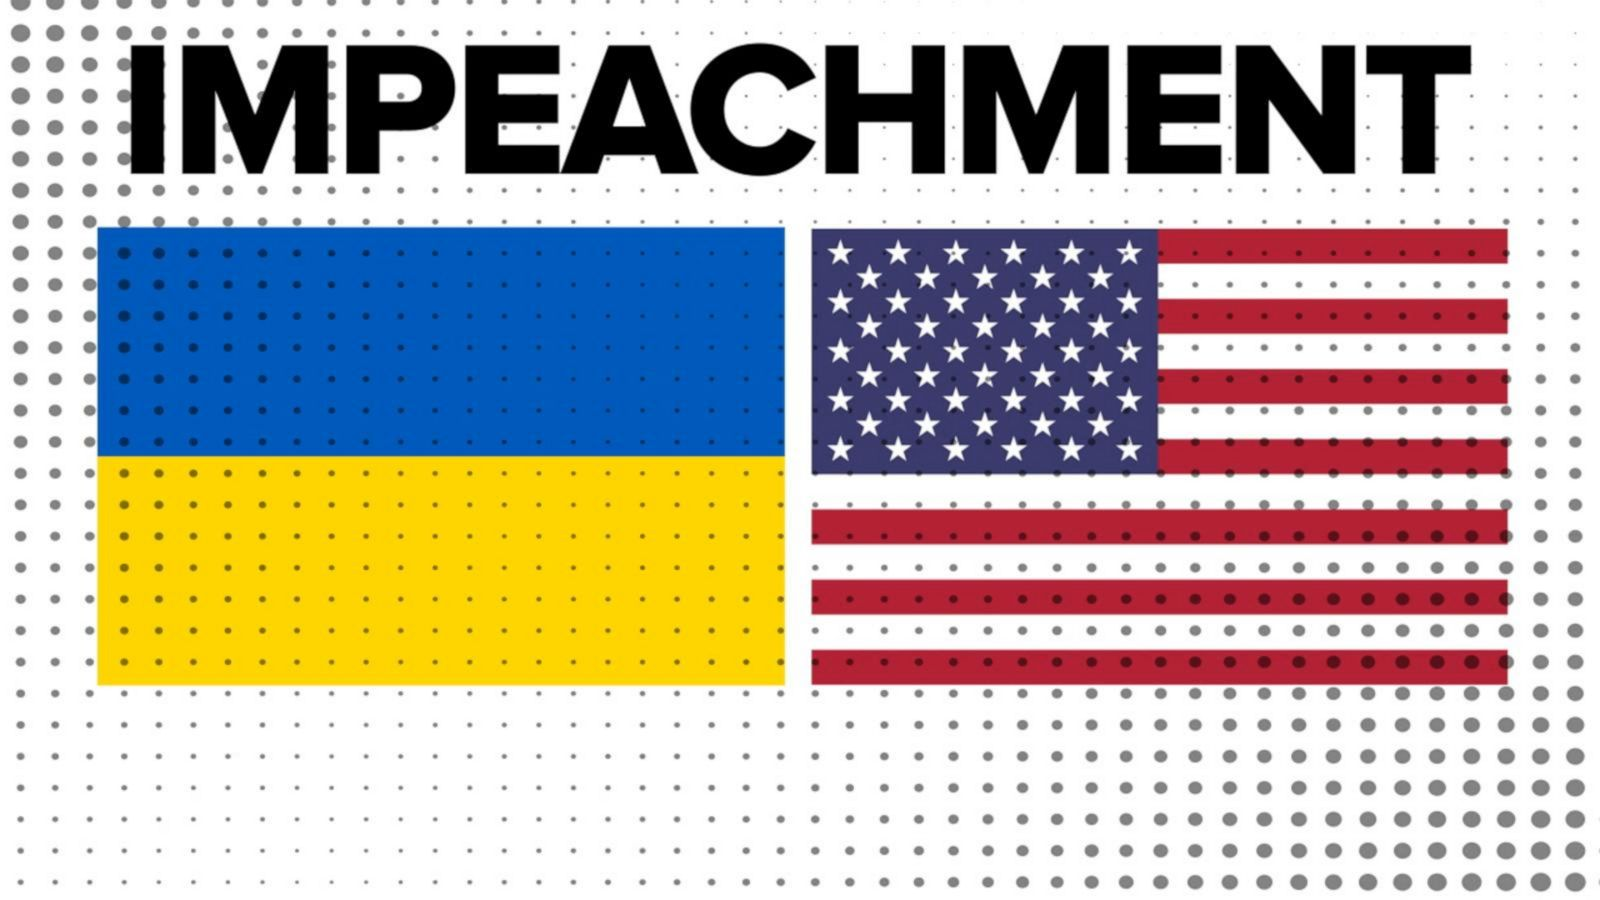 Do You Buy That … Public Opinion On Impeachment Is Shifting?